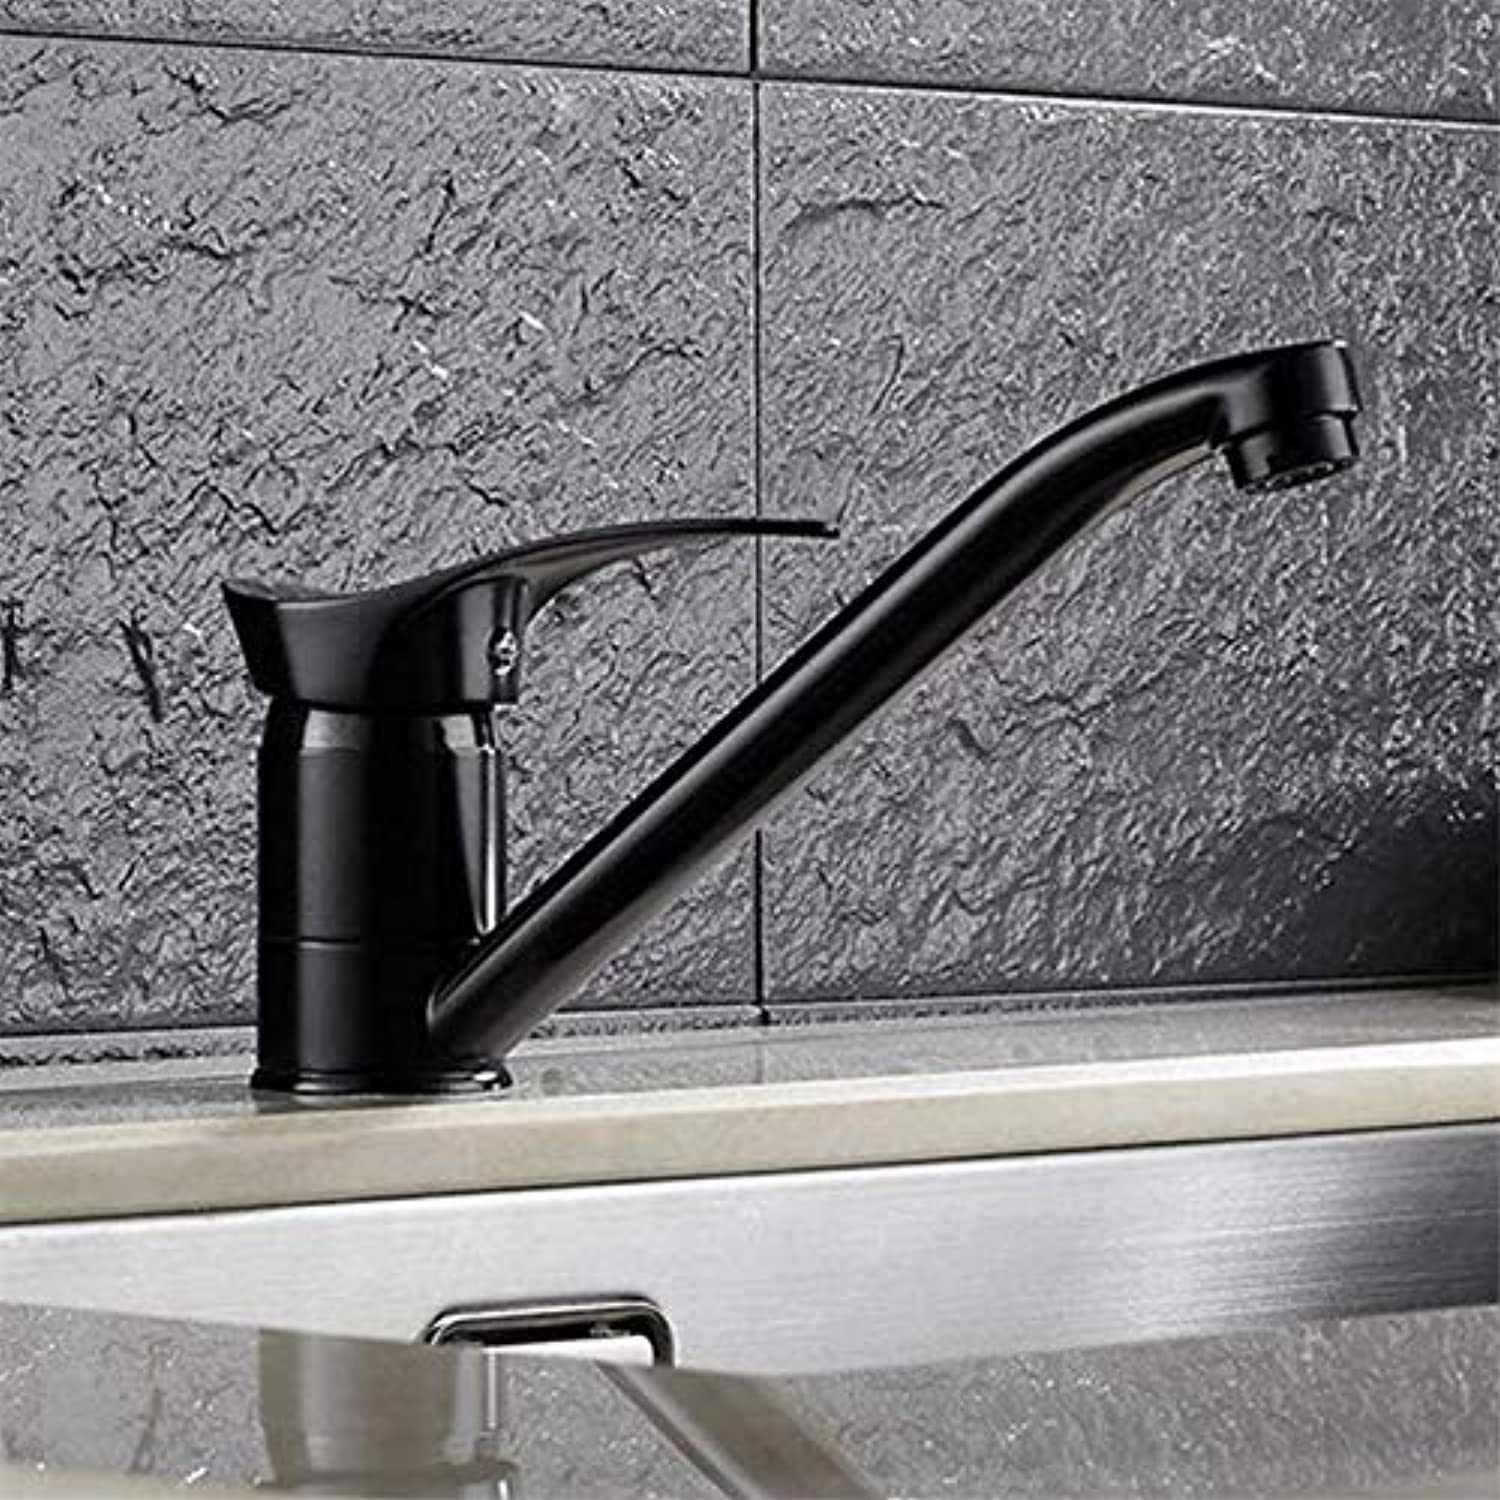 Kitchen Faucet Black Kitchen Sink Faucet, Modern Style Kitchen wash Basin Faucet Faucet Faucet hot and Cold Faucet, Black